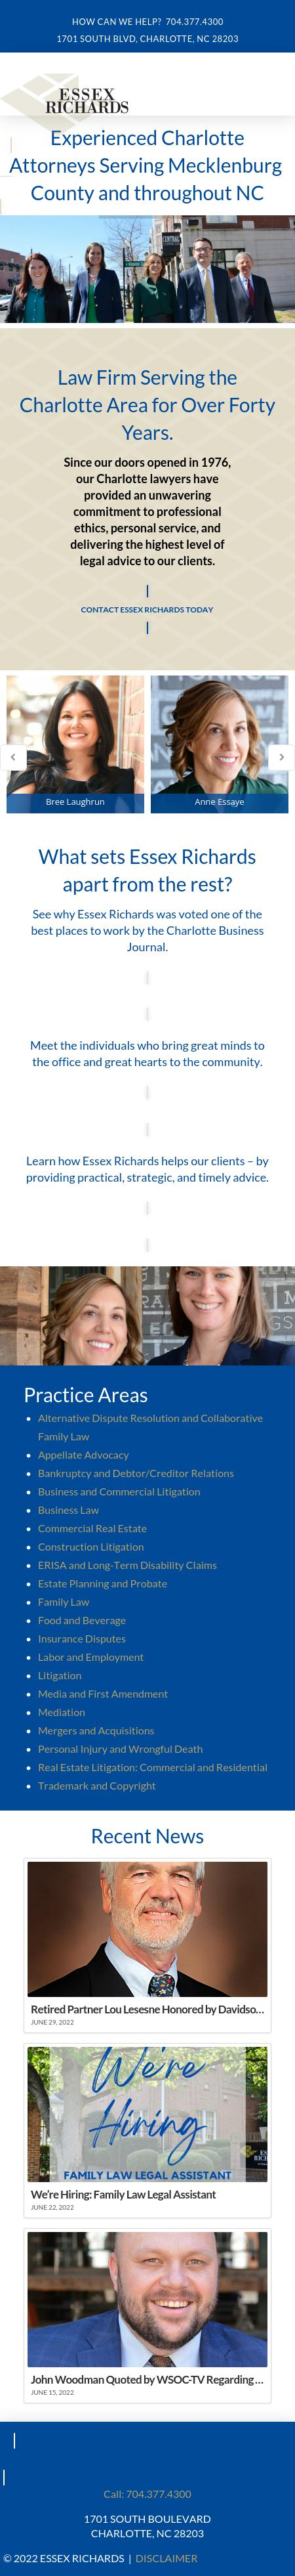 Essex Richards, P.A. - Charlotte NC Lawyers